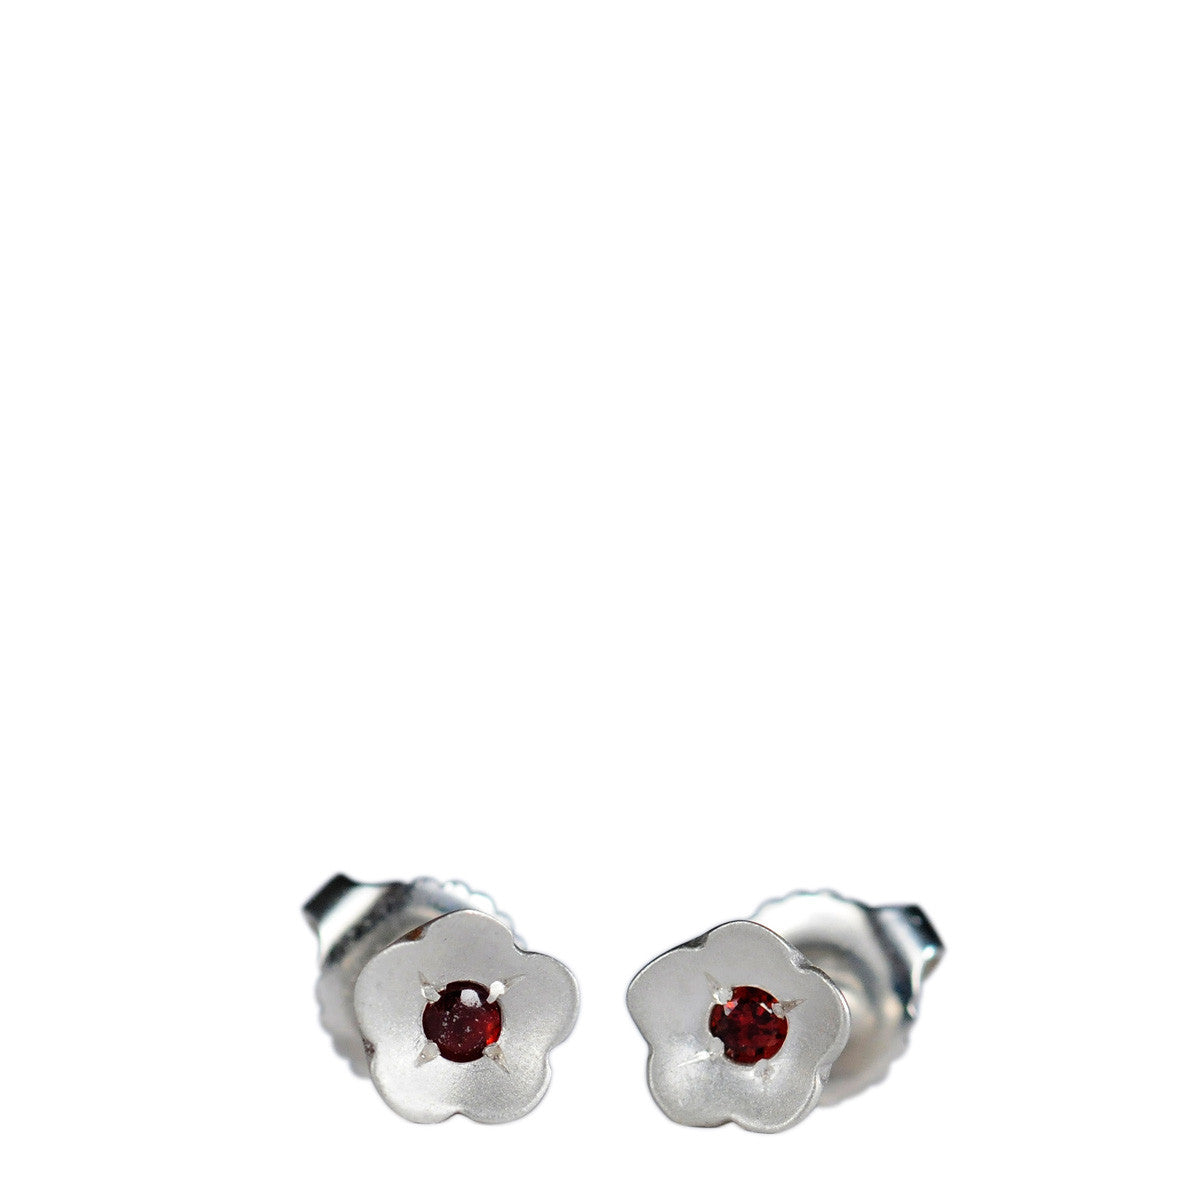 Sterling Silver Buttercup Stud Earrings with Garnet